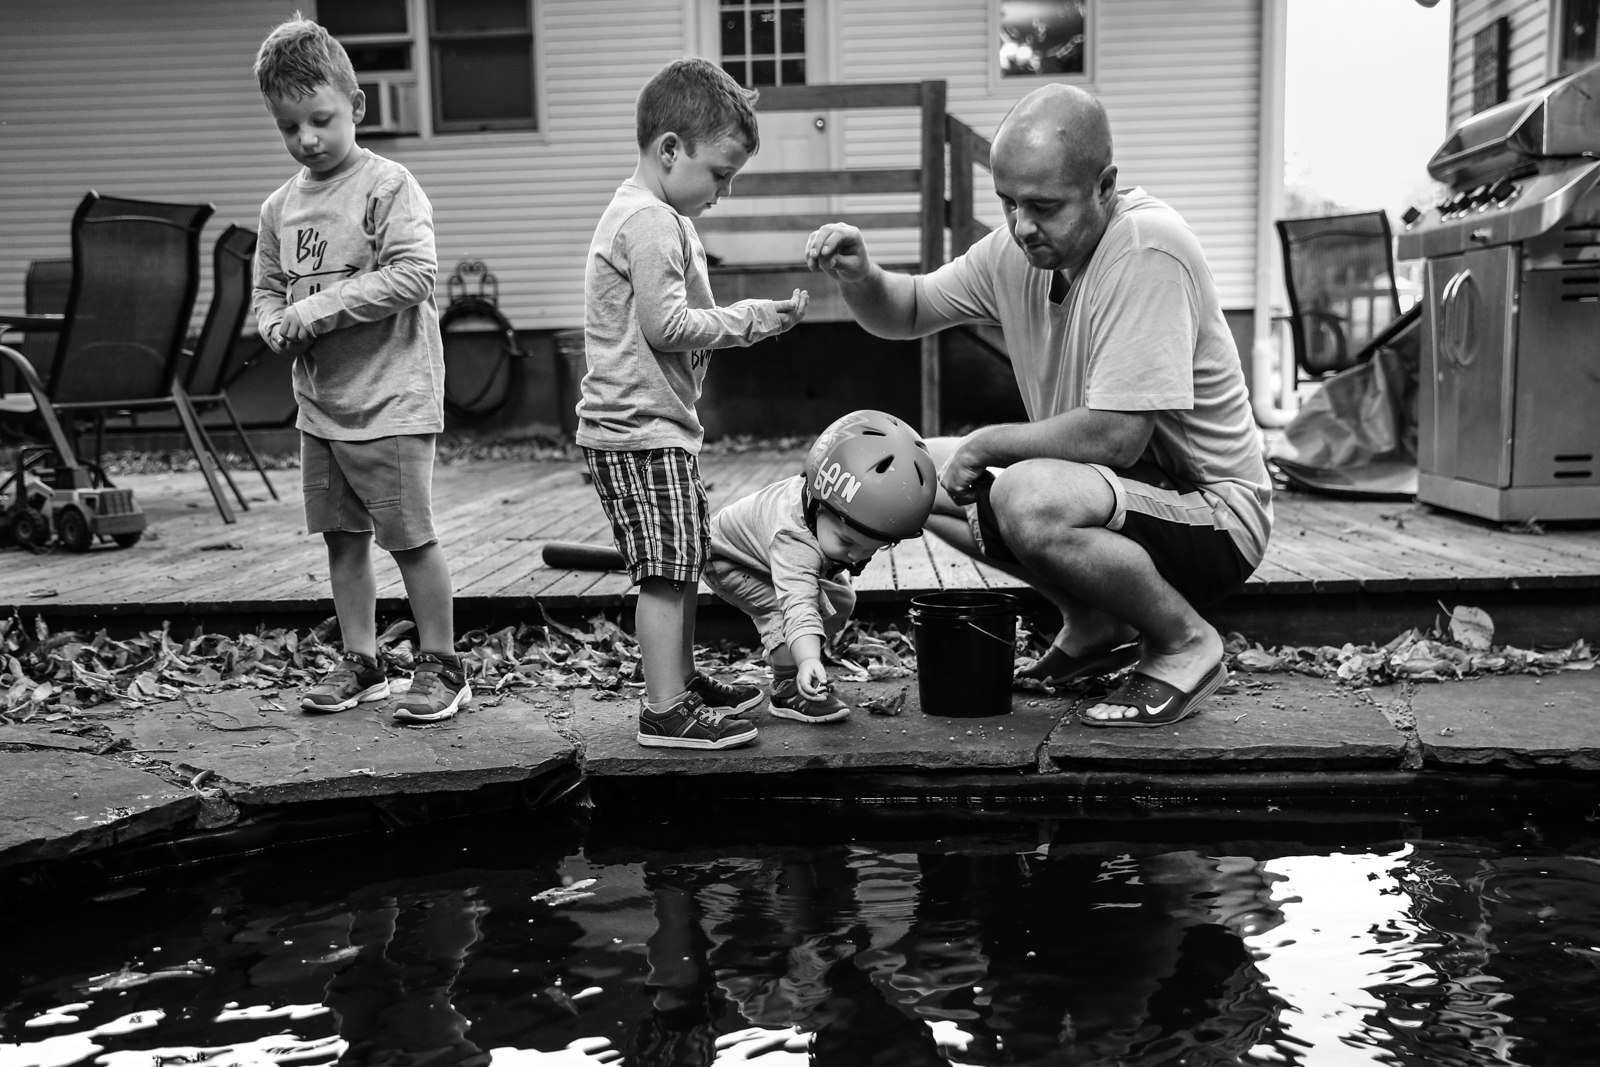 Man hands out fish food to three boys standing next to coy pond